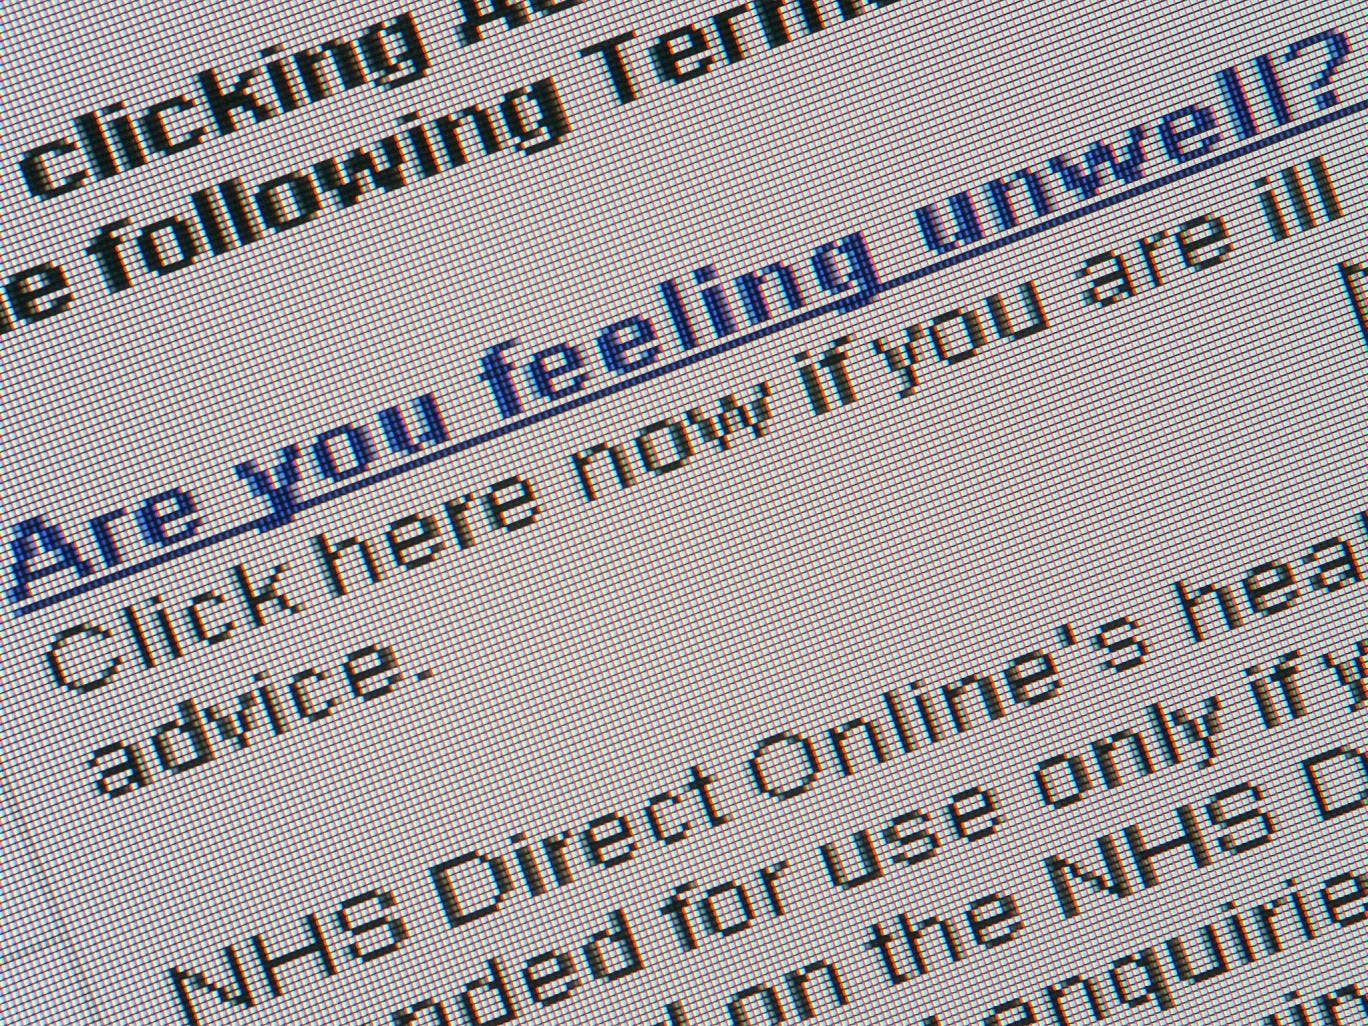 Patients accessing the site were sent adverts and malware